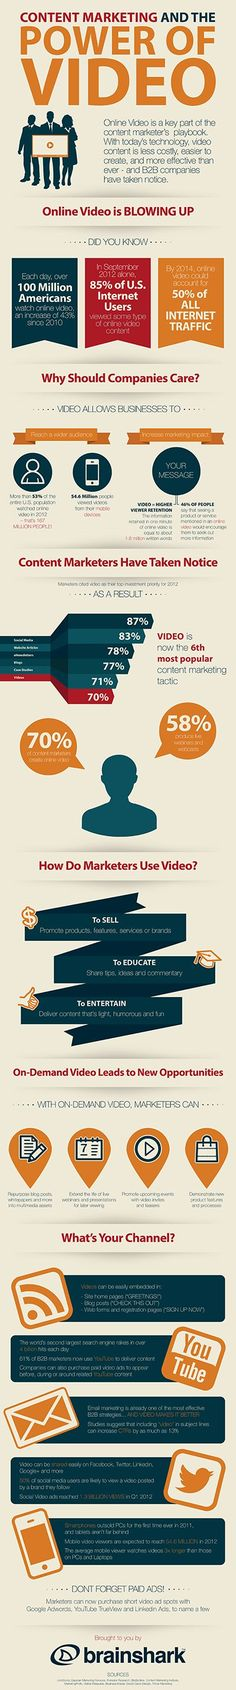 Content marketing the power of video #content #video